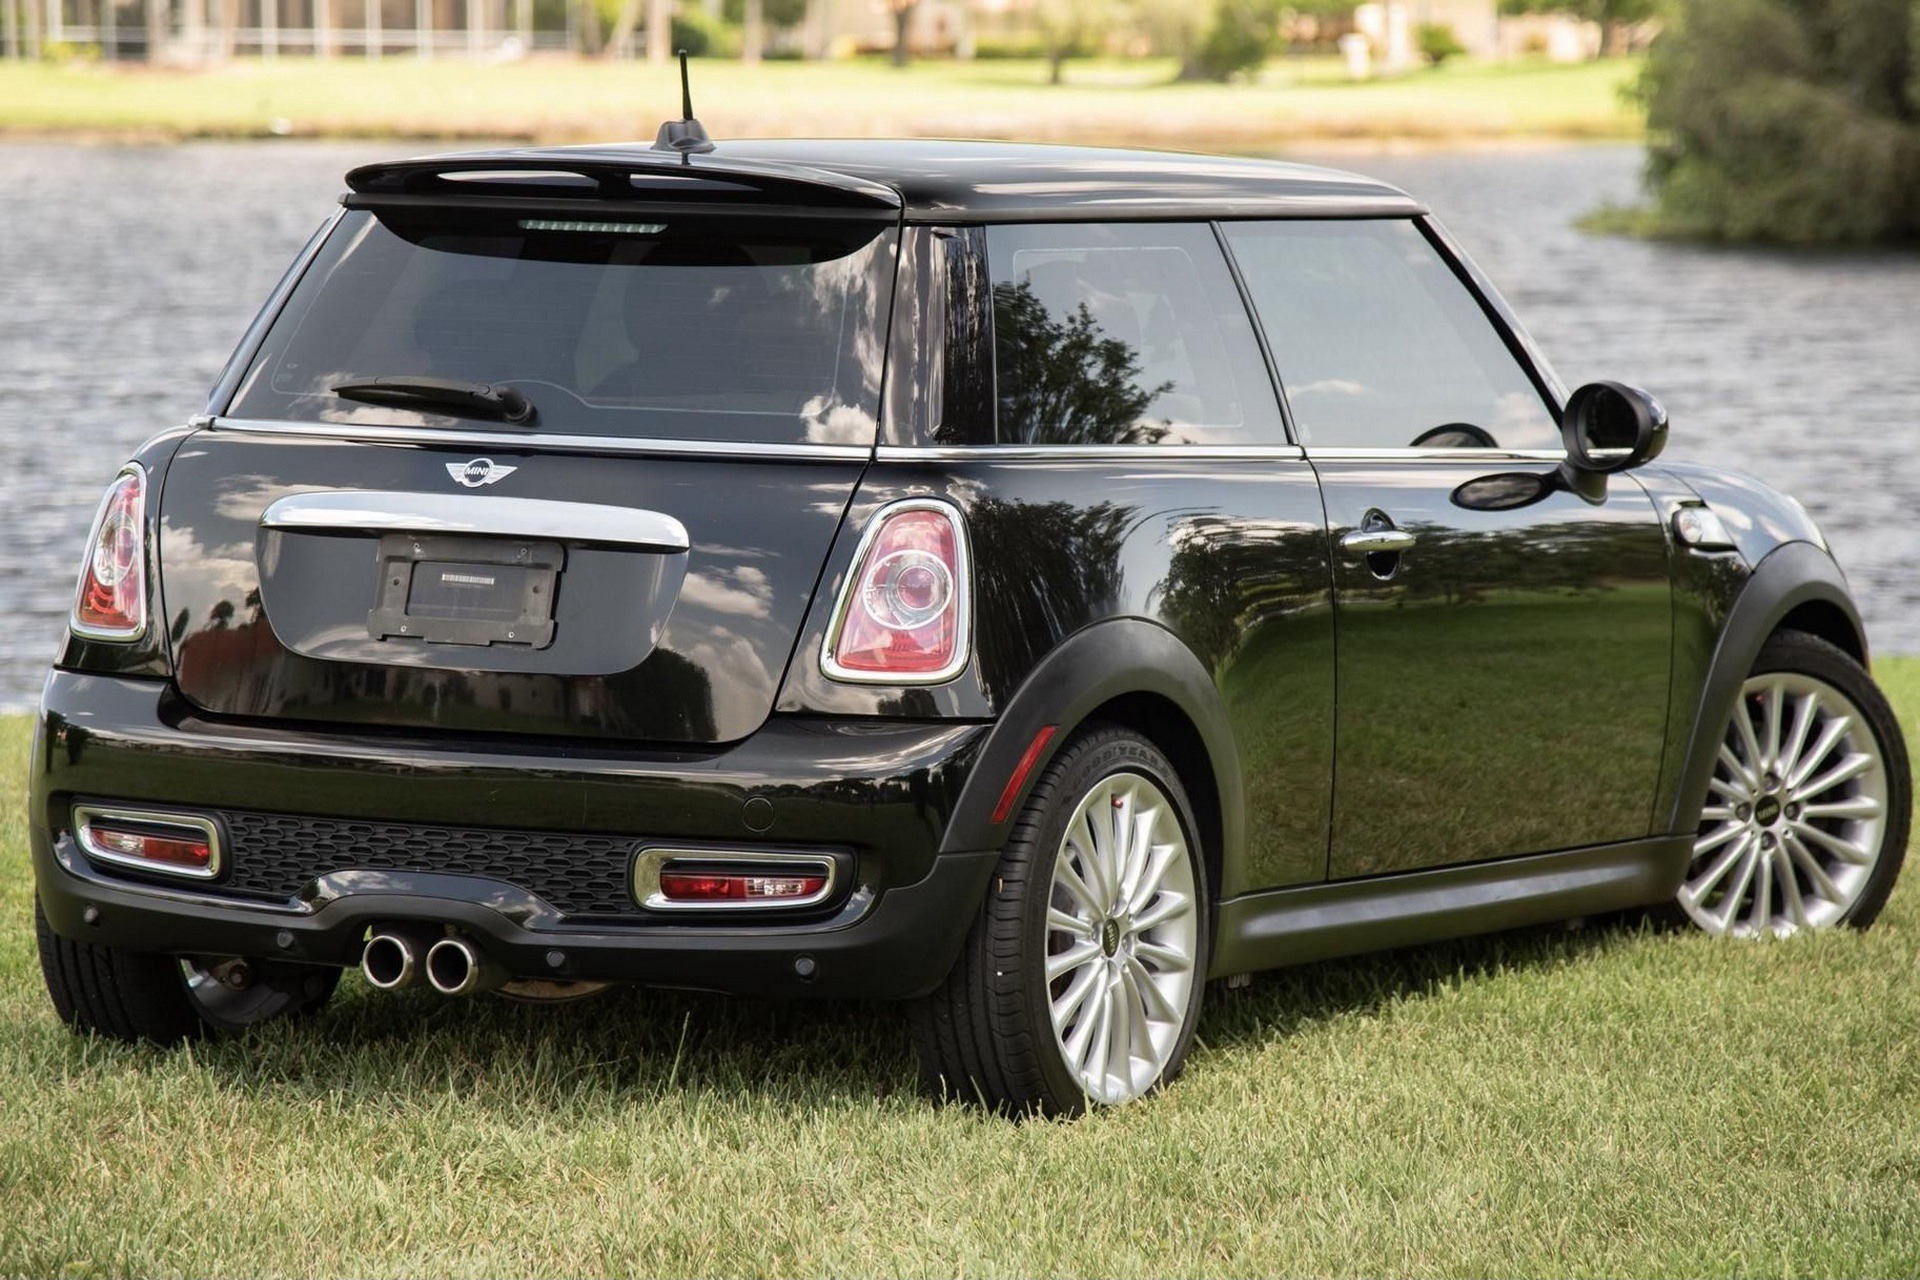 Mini_Cooper_S_Inspired_by_Goodwood-0003